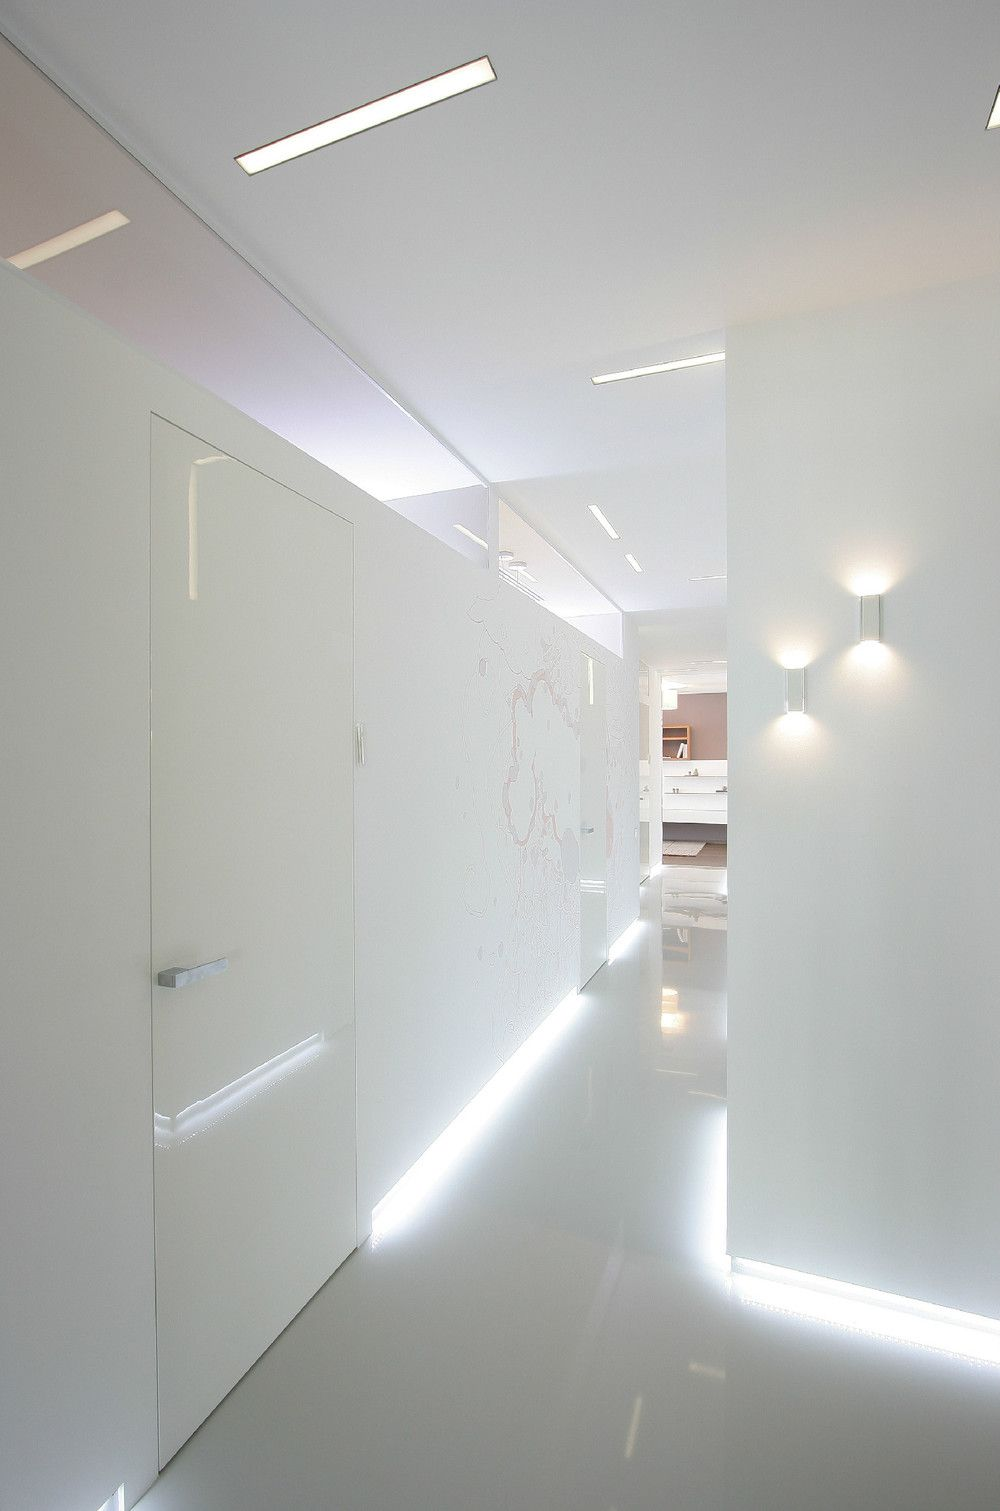 Led lighting in a hallway - Home lighting design ideas | stan ...